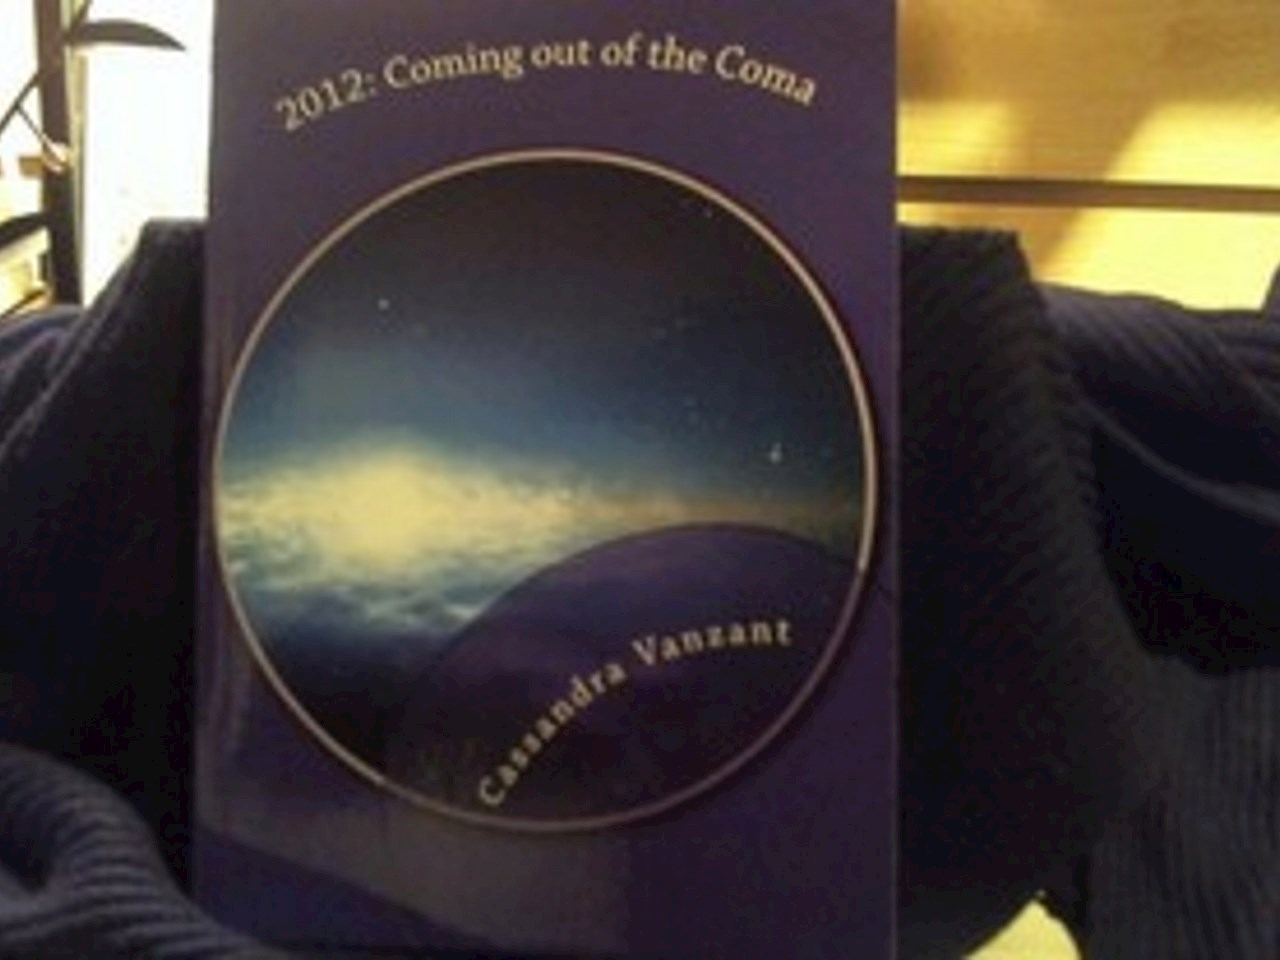 2012: Coming out of the Coma